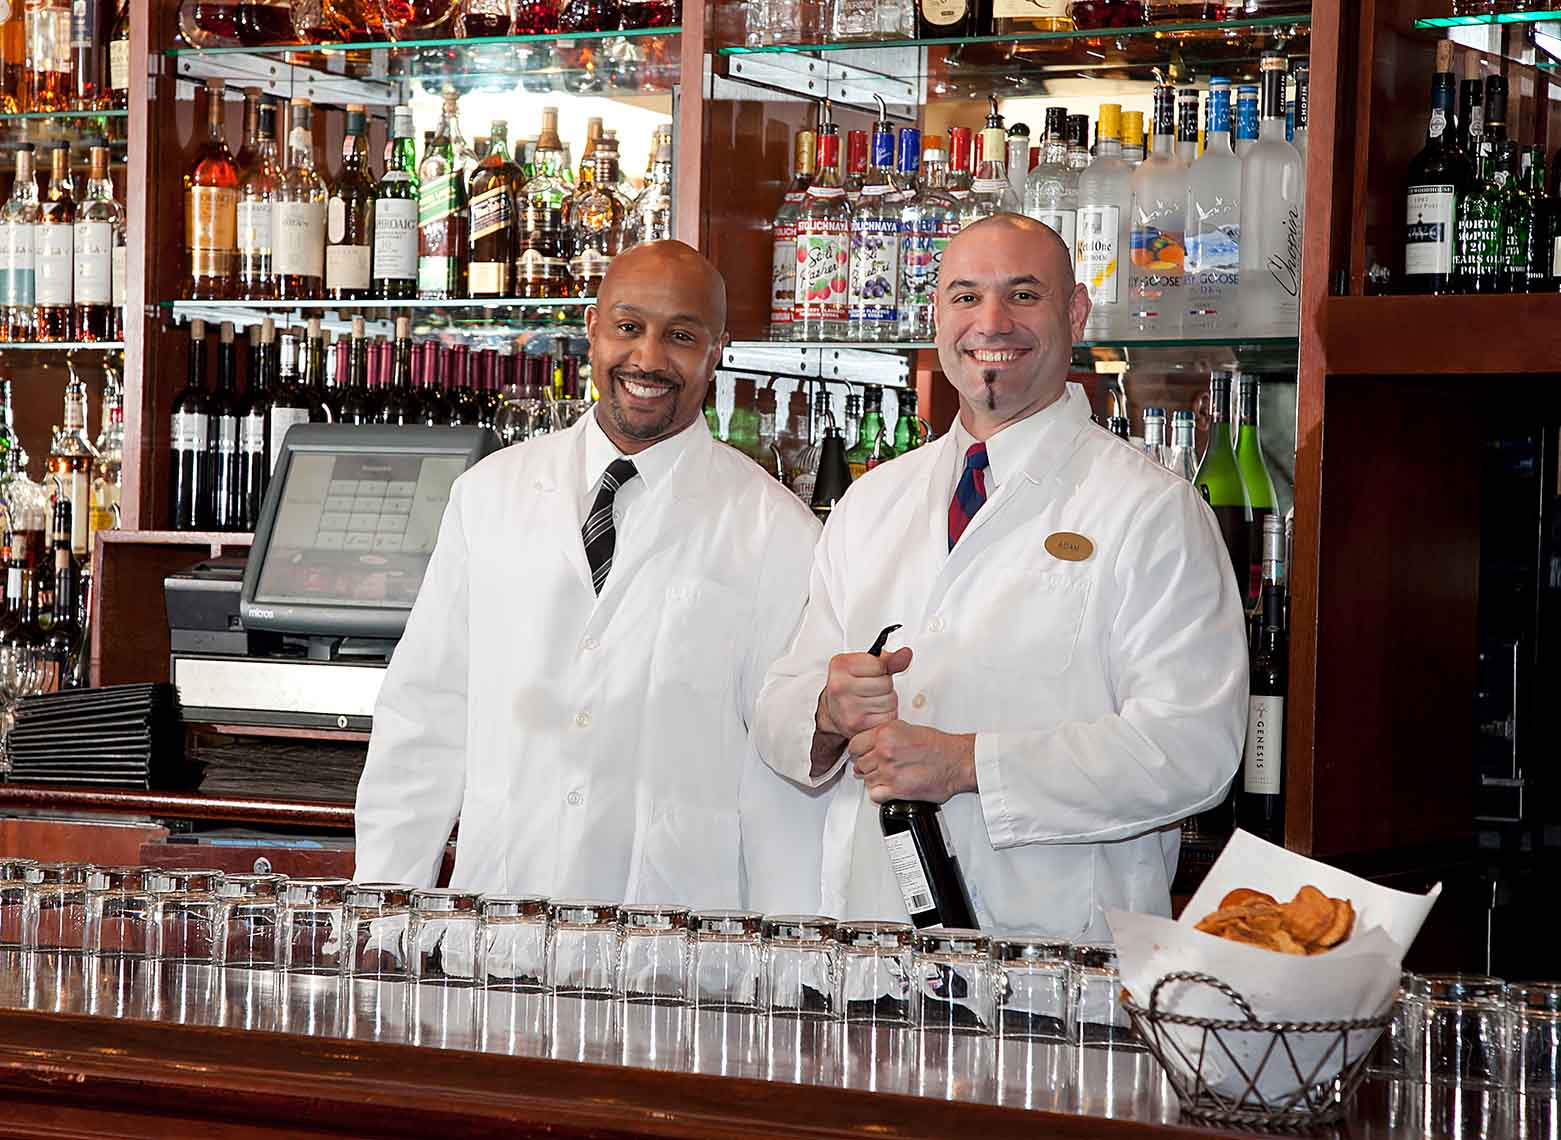 TwoFriendly Bartenders by David Fox Photographer